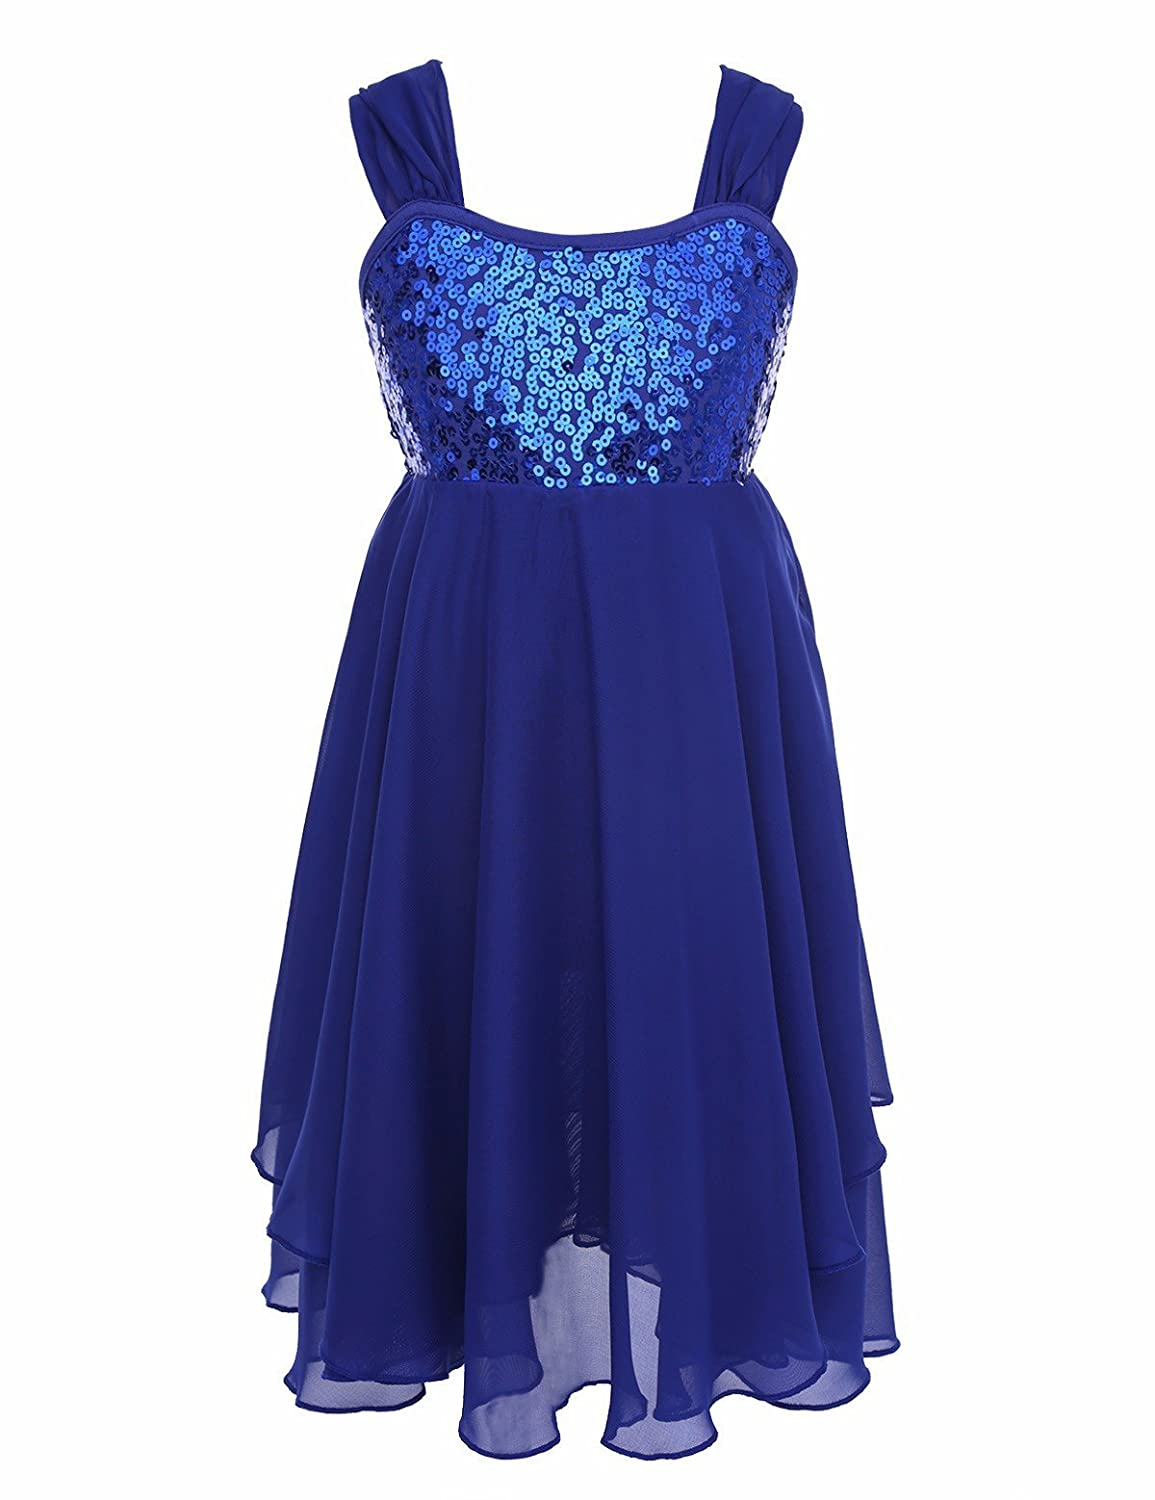 c56fc1b7024a Girls leotard dress, sweetheart and elegant style. Spaghetti straps inside  with adjustable buckles for adjustment. Adjustable ruched shoulder straps  can ...